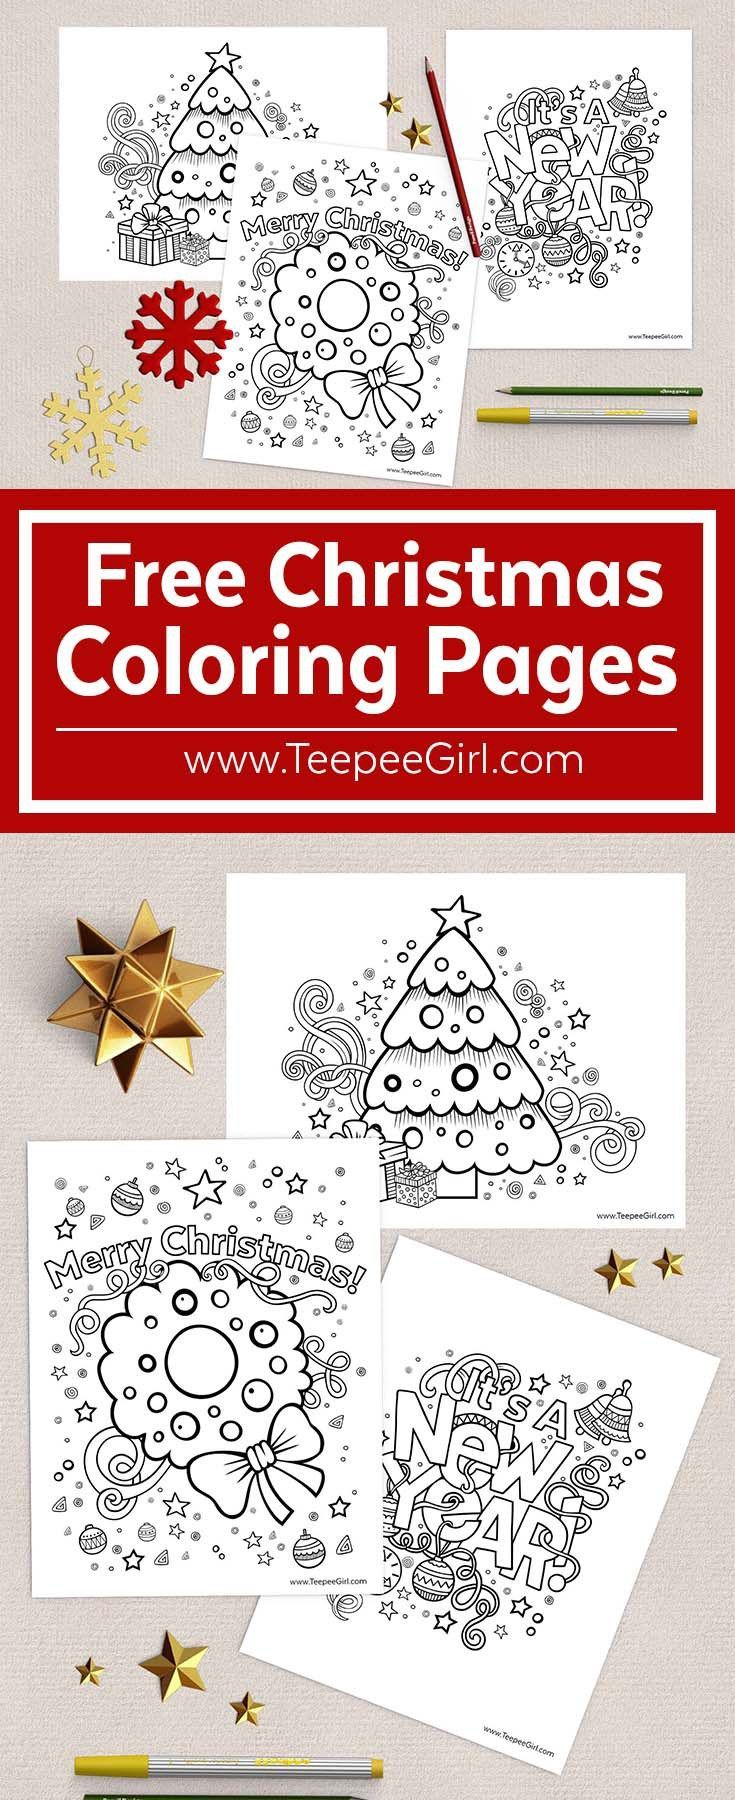 best holidays images on pinterest craft drawings of and appliques